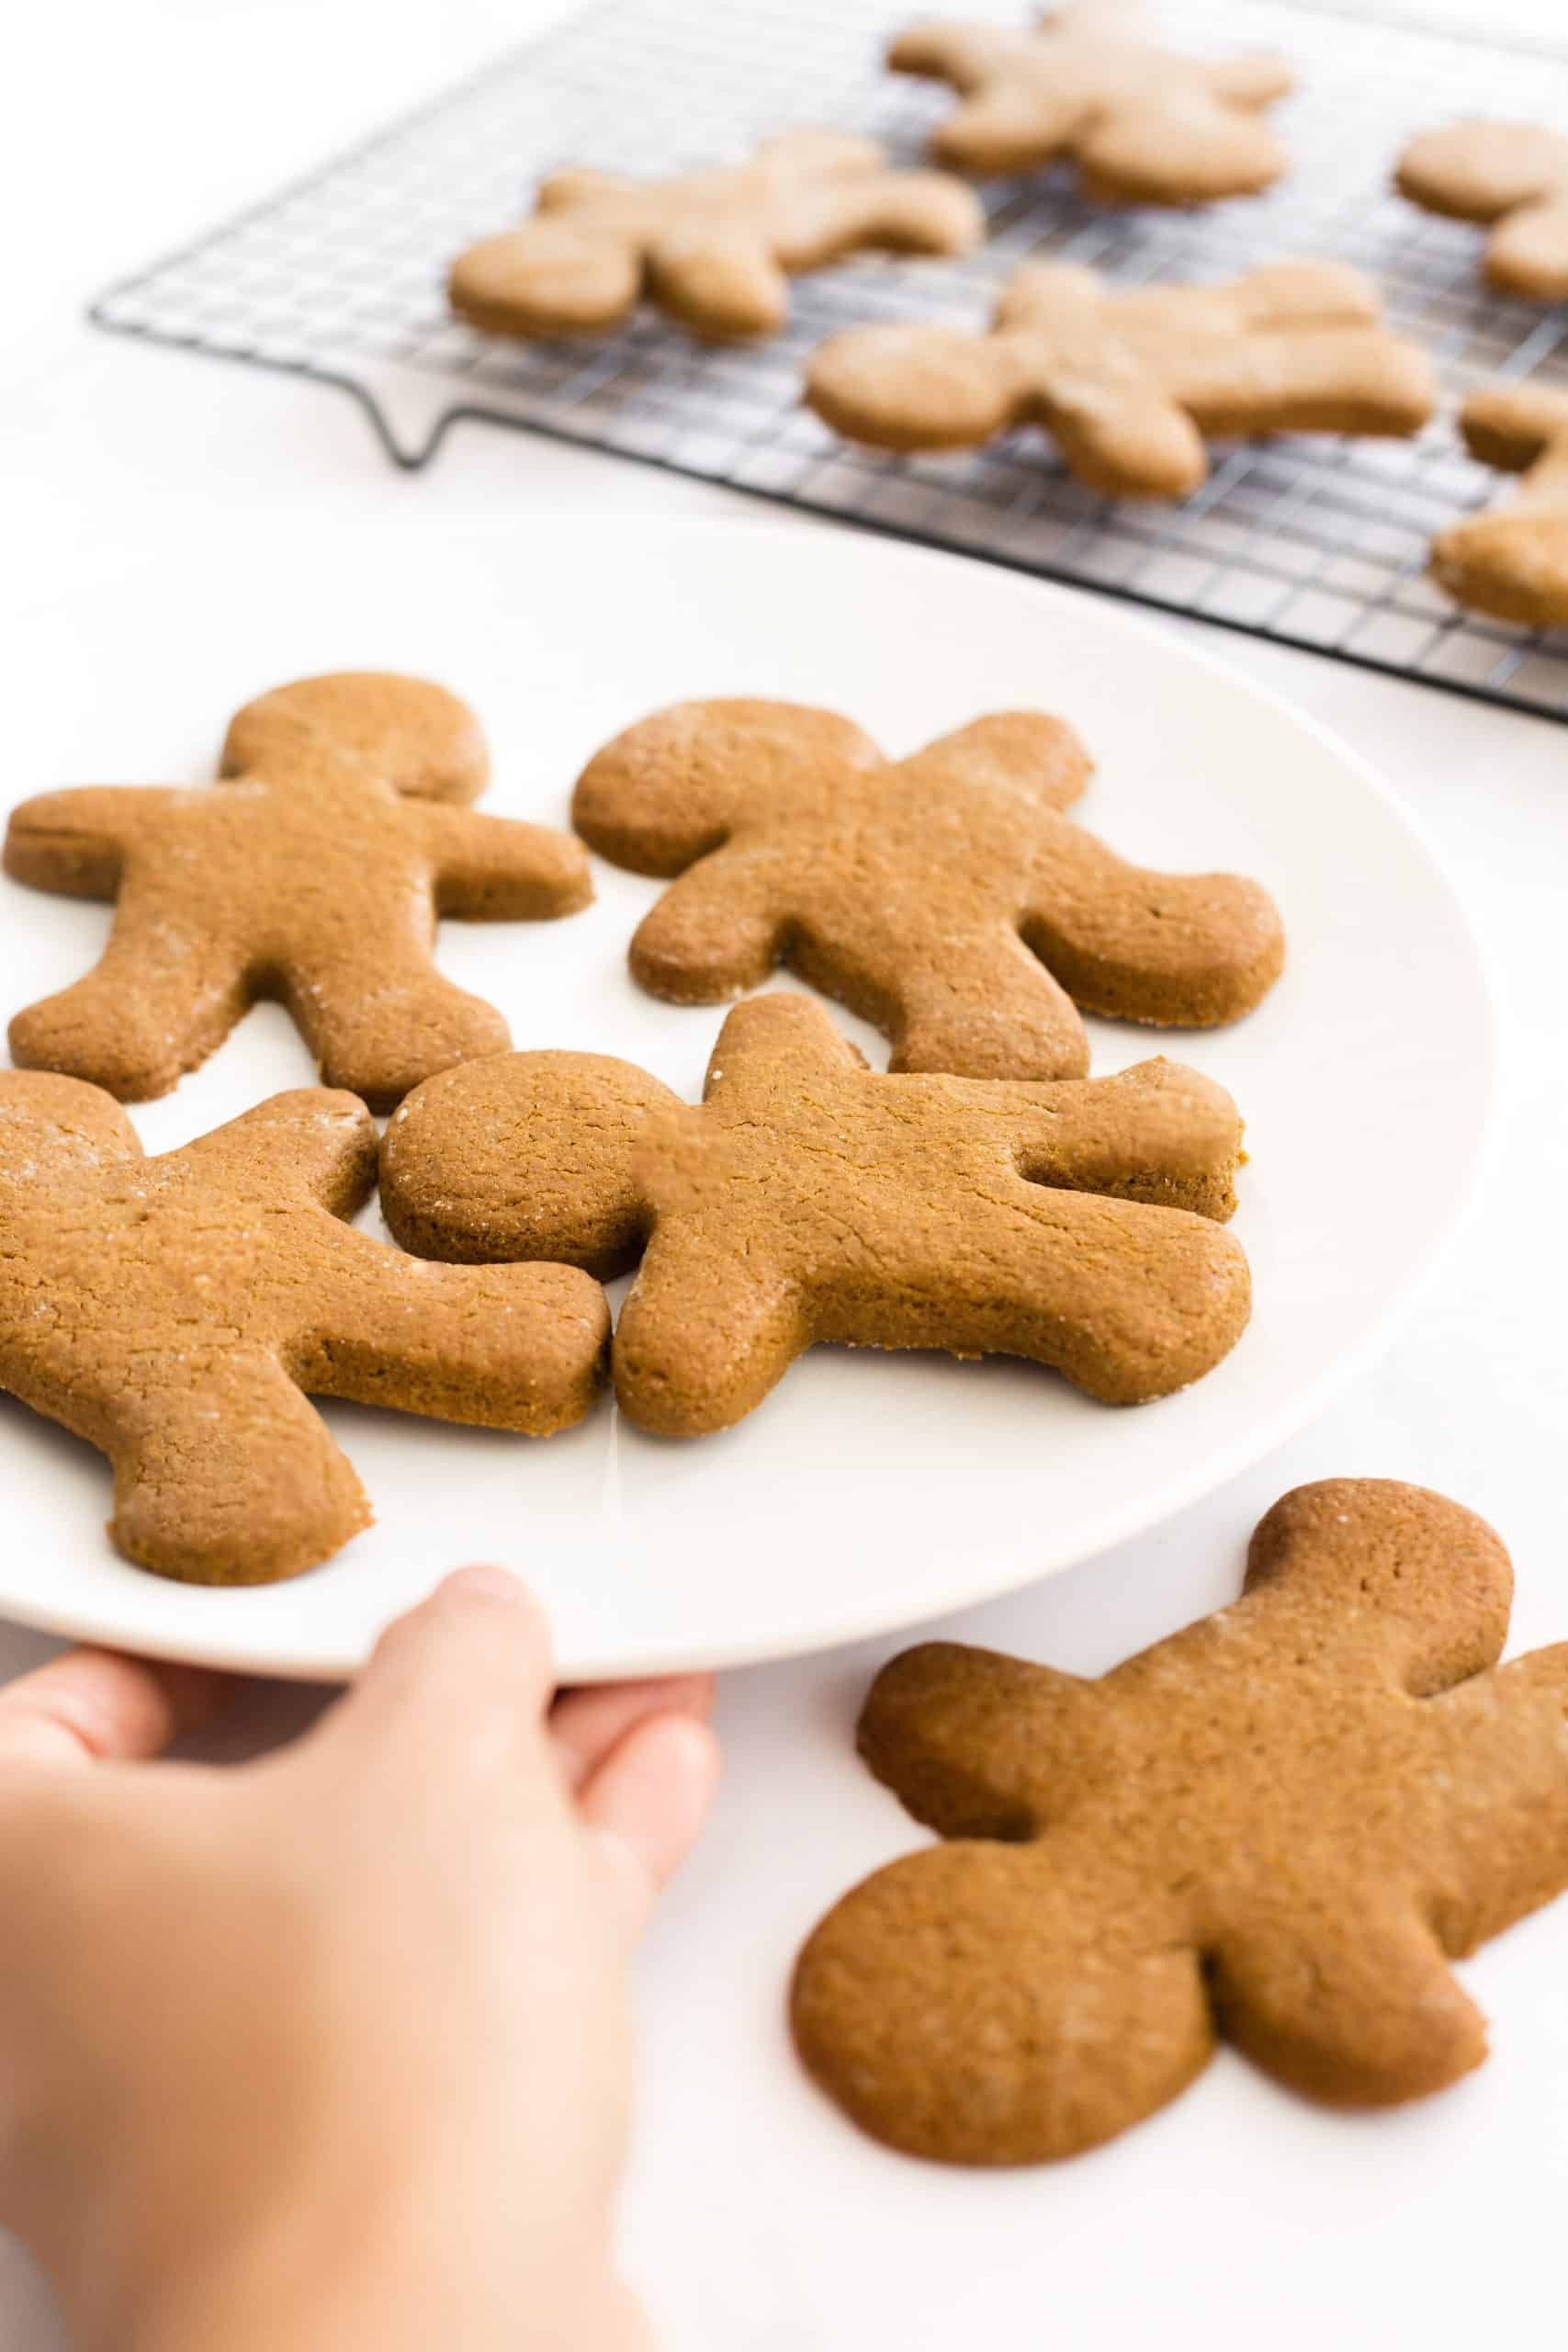 Hand holding a plate of gingerbread men.